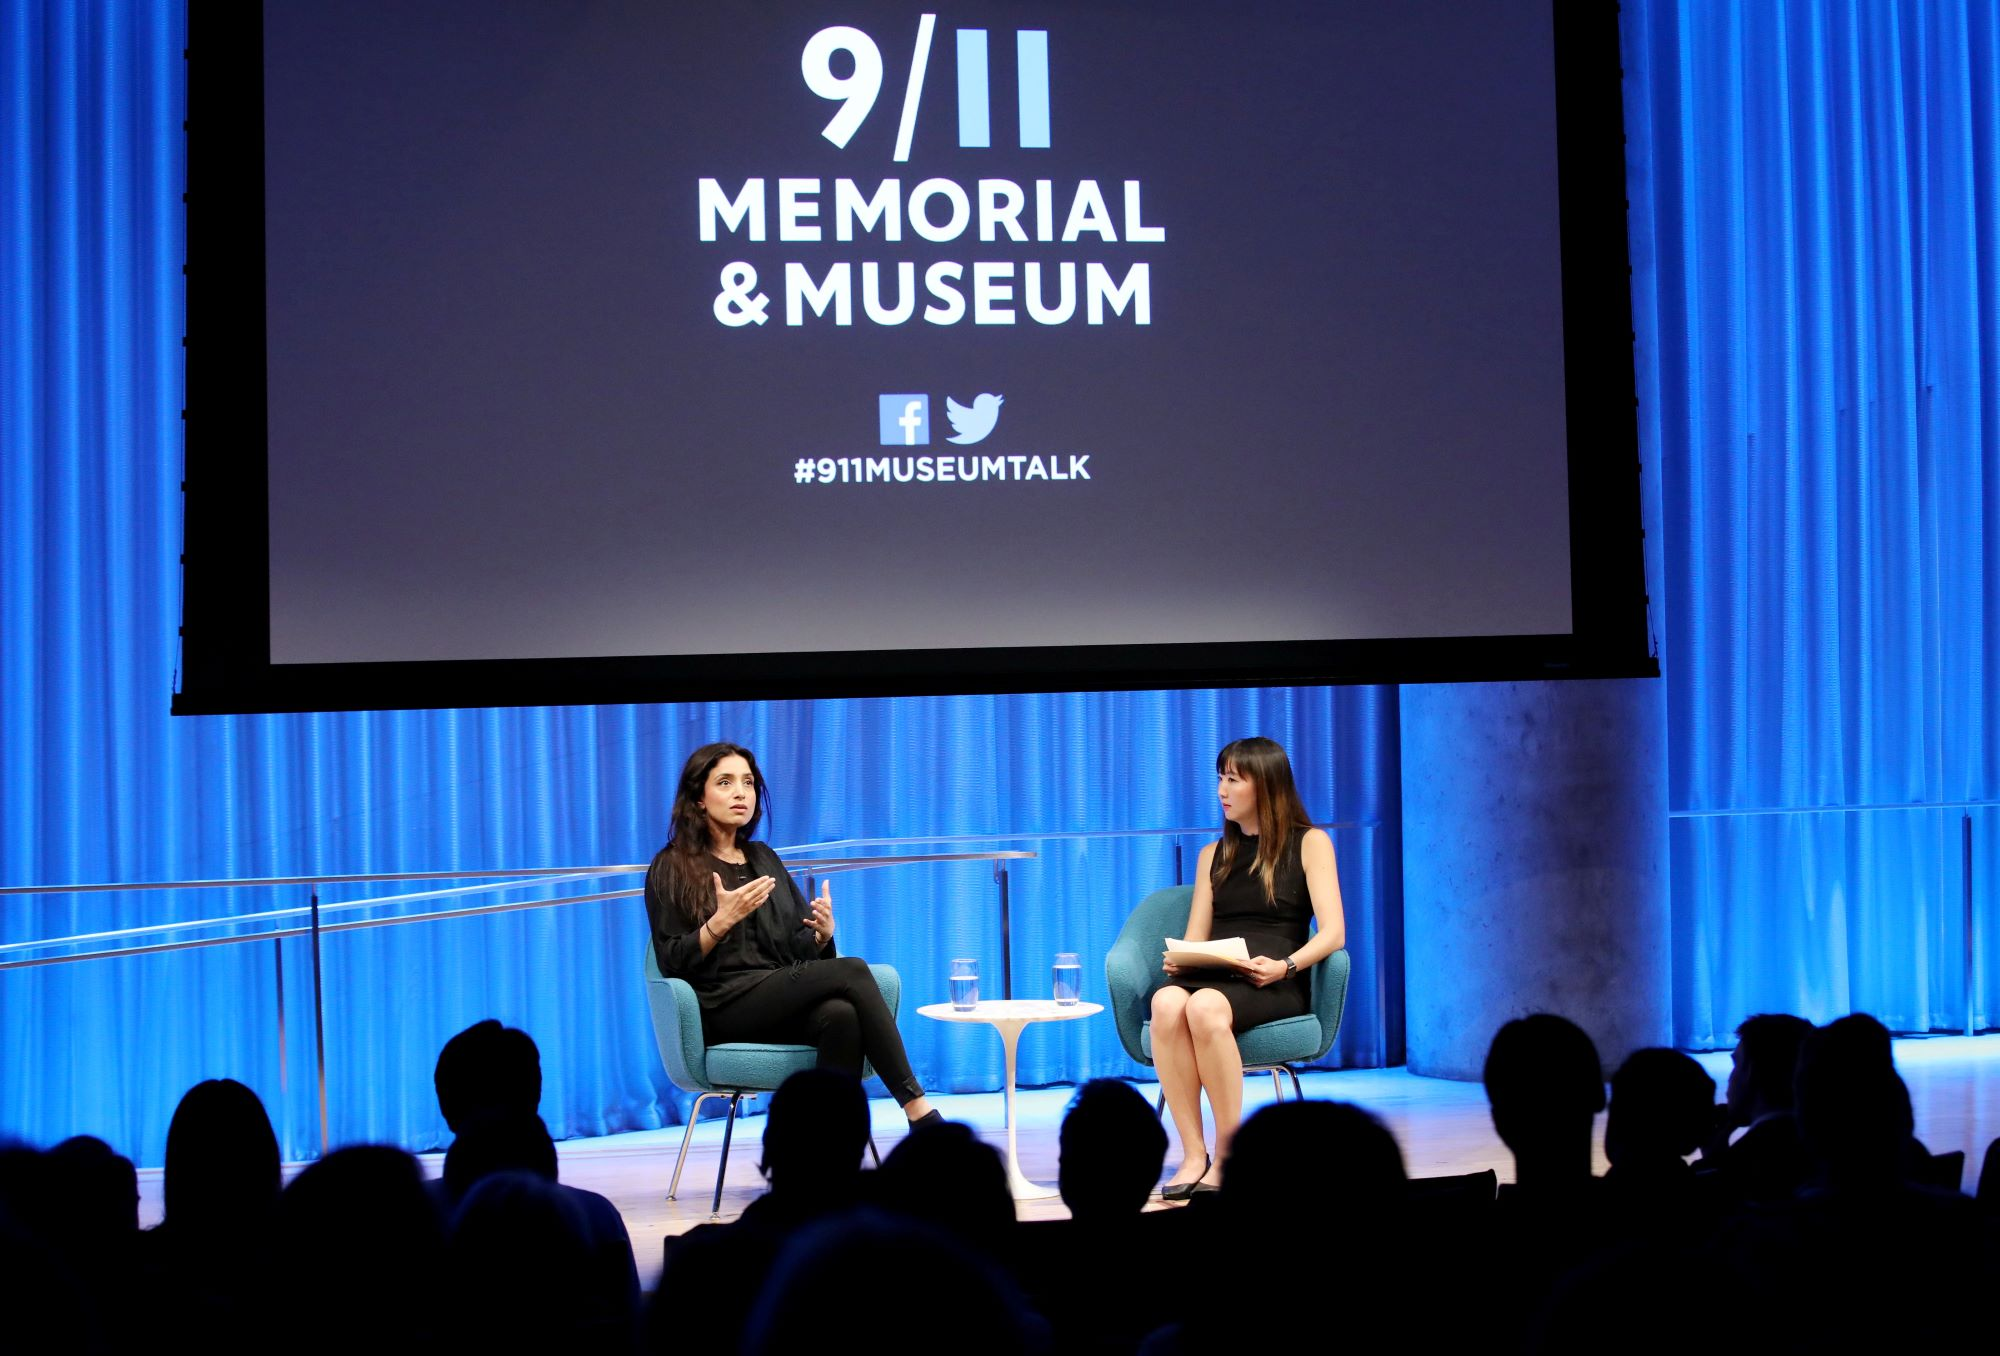 In this wide-angle photo of the Museum Auditorium stage, Emmy Award–winning documentarian Deeyah Khan speaks to the audience while seated next to a woman hosting the event. The audience members are silhouetted by blue and white lights shining on the stage. A large projector screen has been lowered above the two of them.